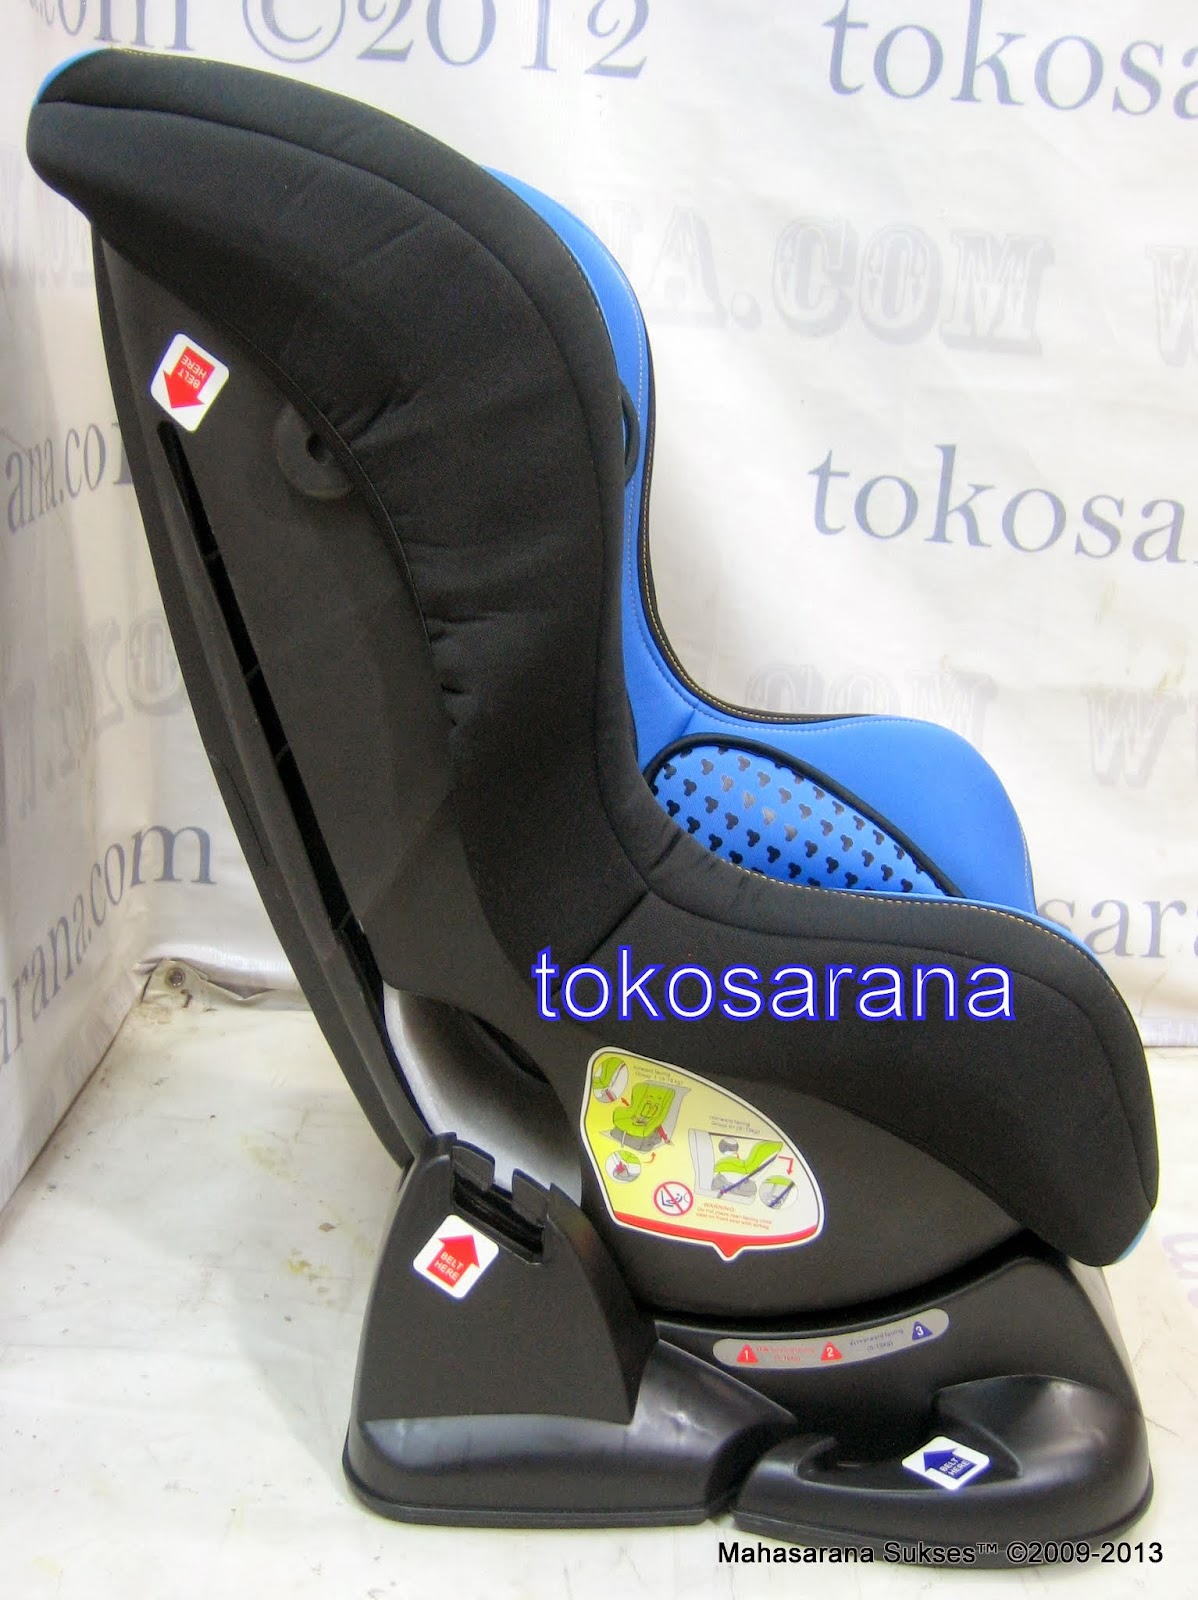 clearance sale sepeda mainan anak dan perlengkapan bayi baby car seat pliko db018b disney. Black Bedroom Furniture Sets. Home Design Ideas